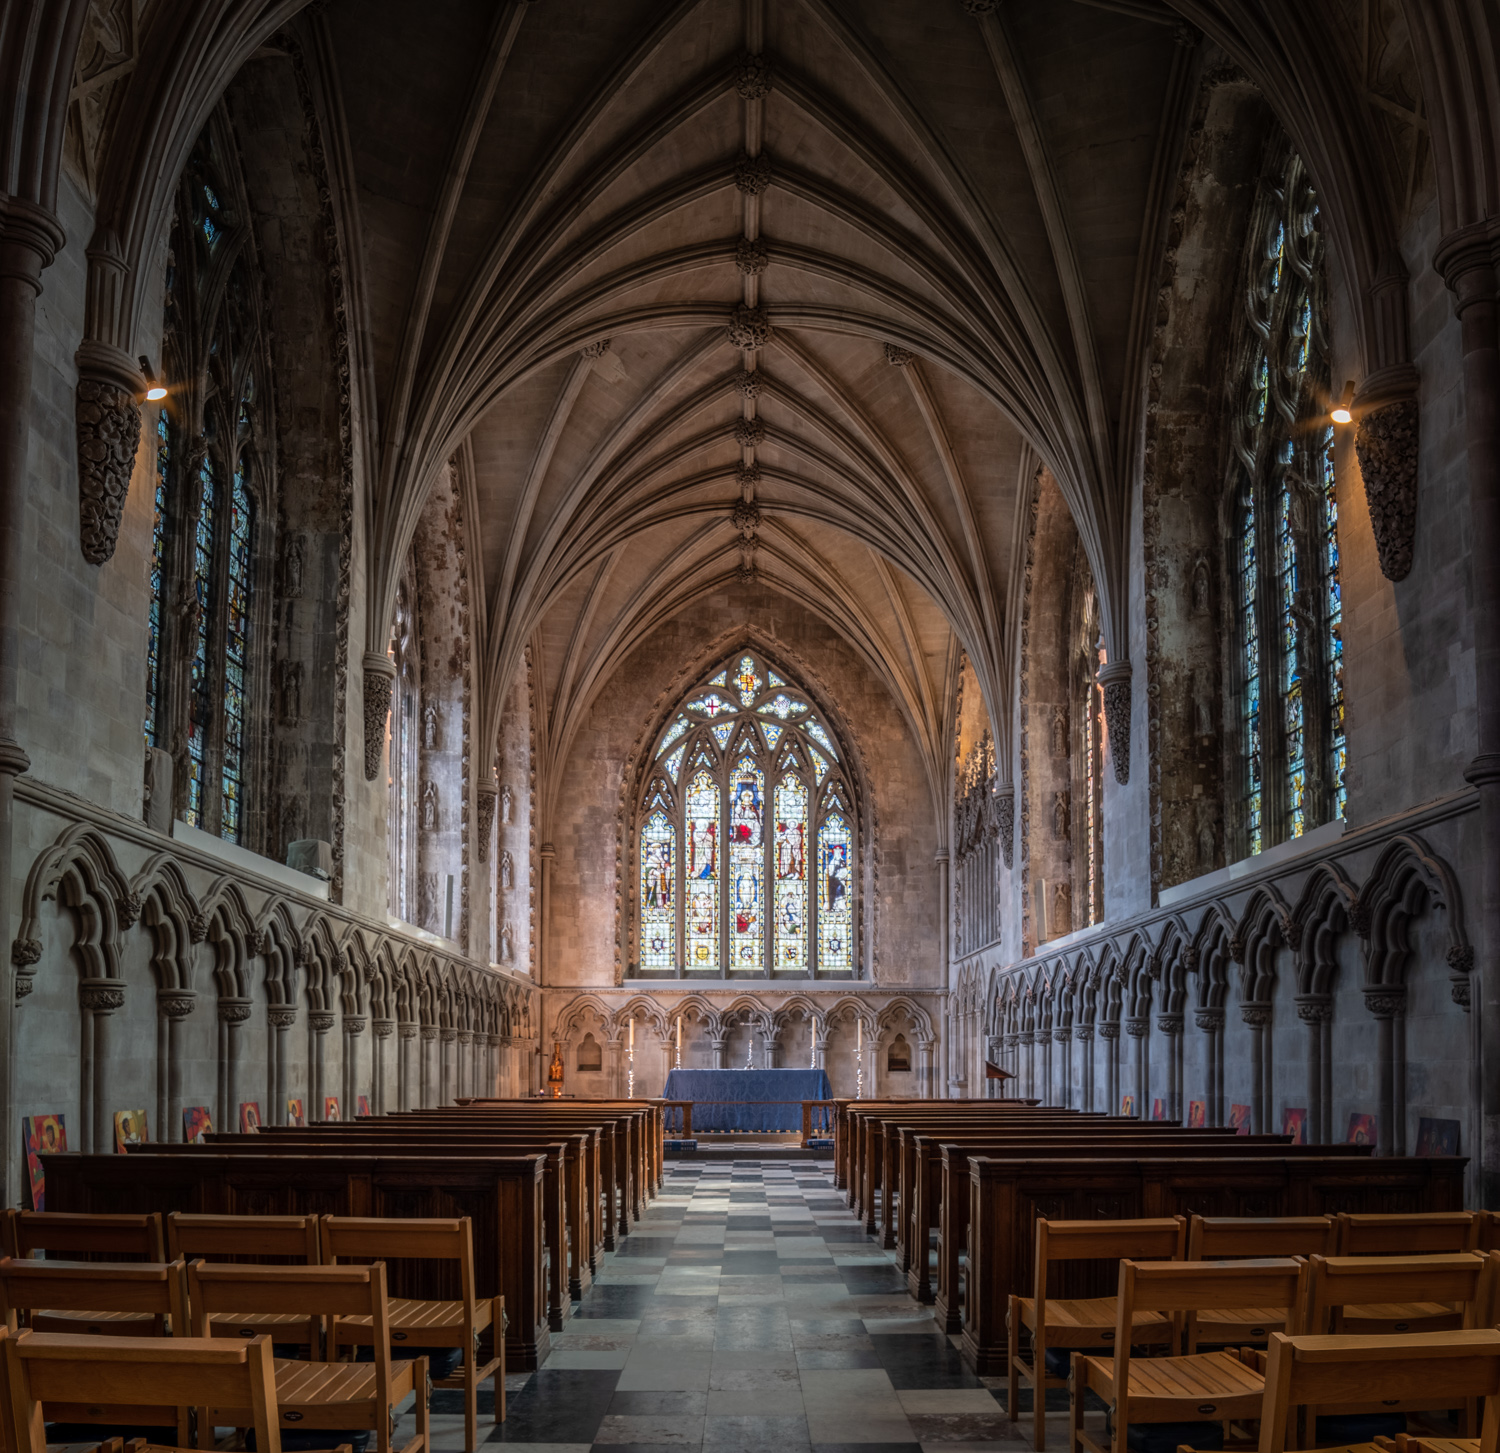 The Lady Chapel at St. Albans Cathedral, shot using my budget shift lens